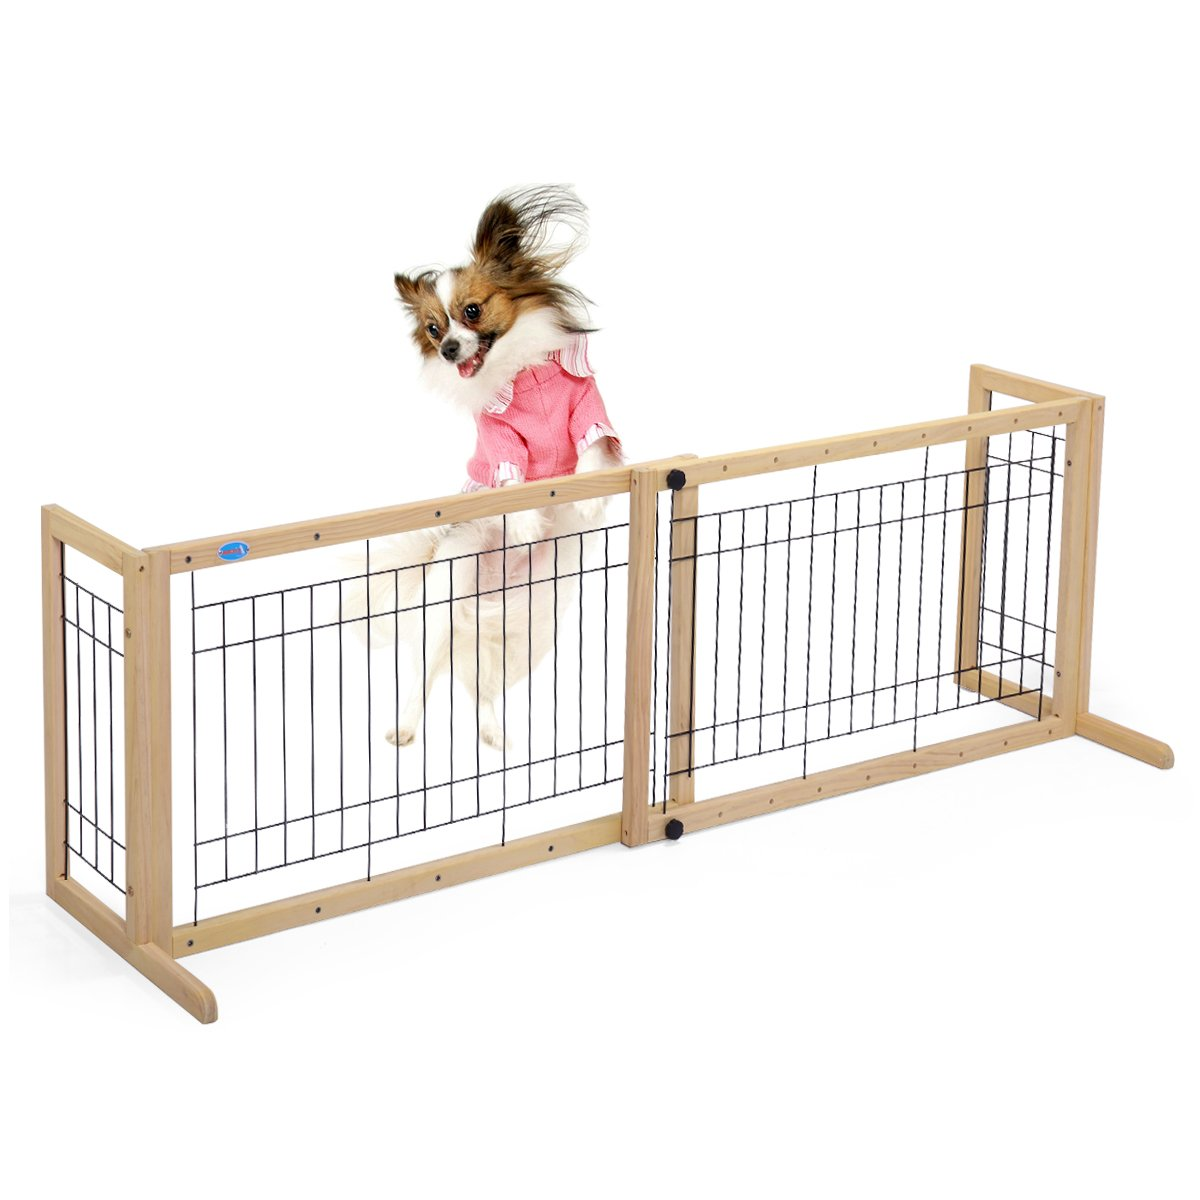 LAZYMOON Dog Gate Adjustable Indoor Solid Wood Construction Pet Fence Gate Free Standing Natural Finish